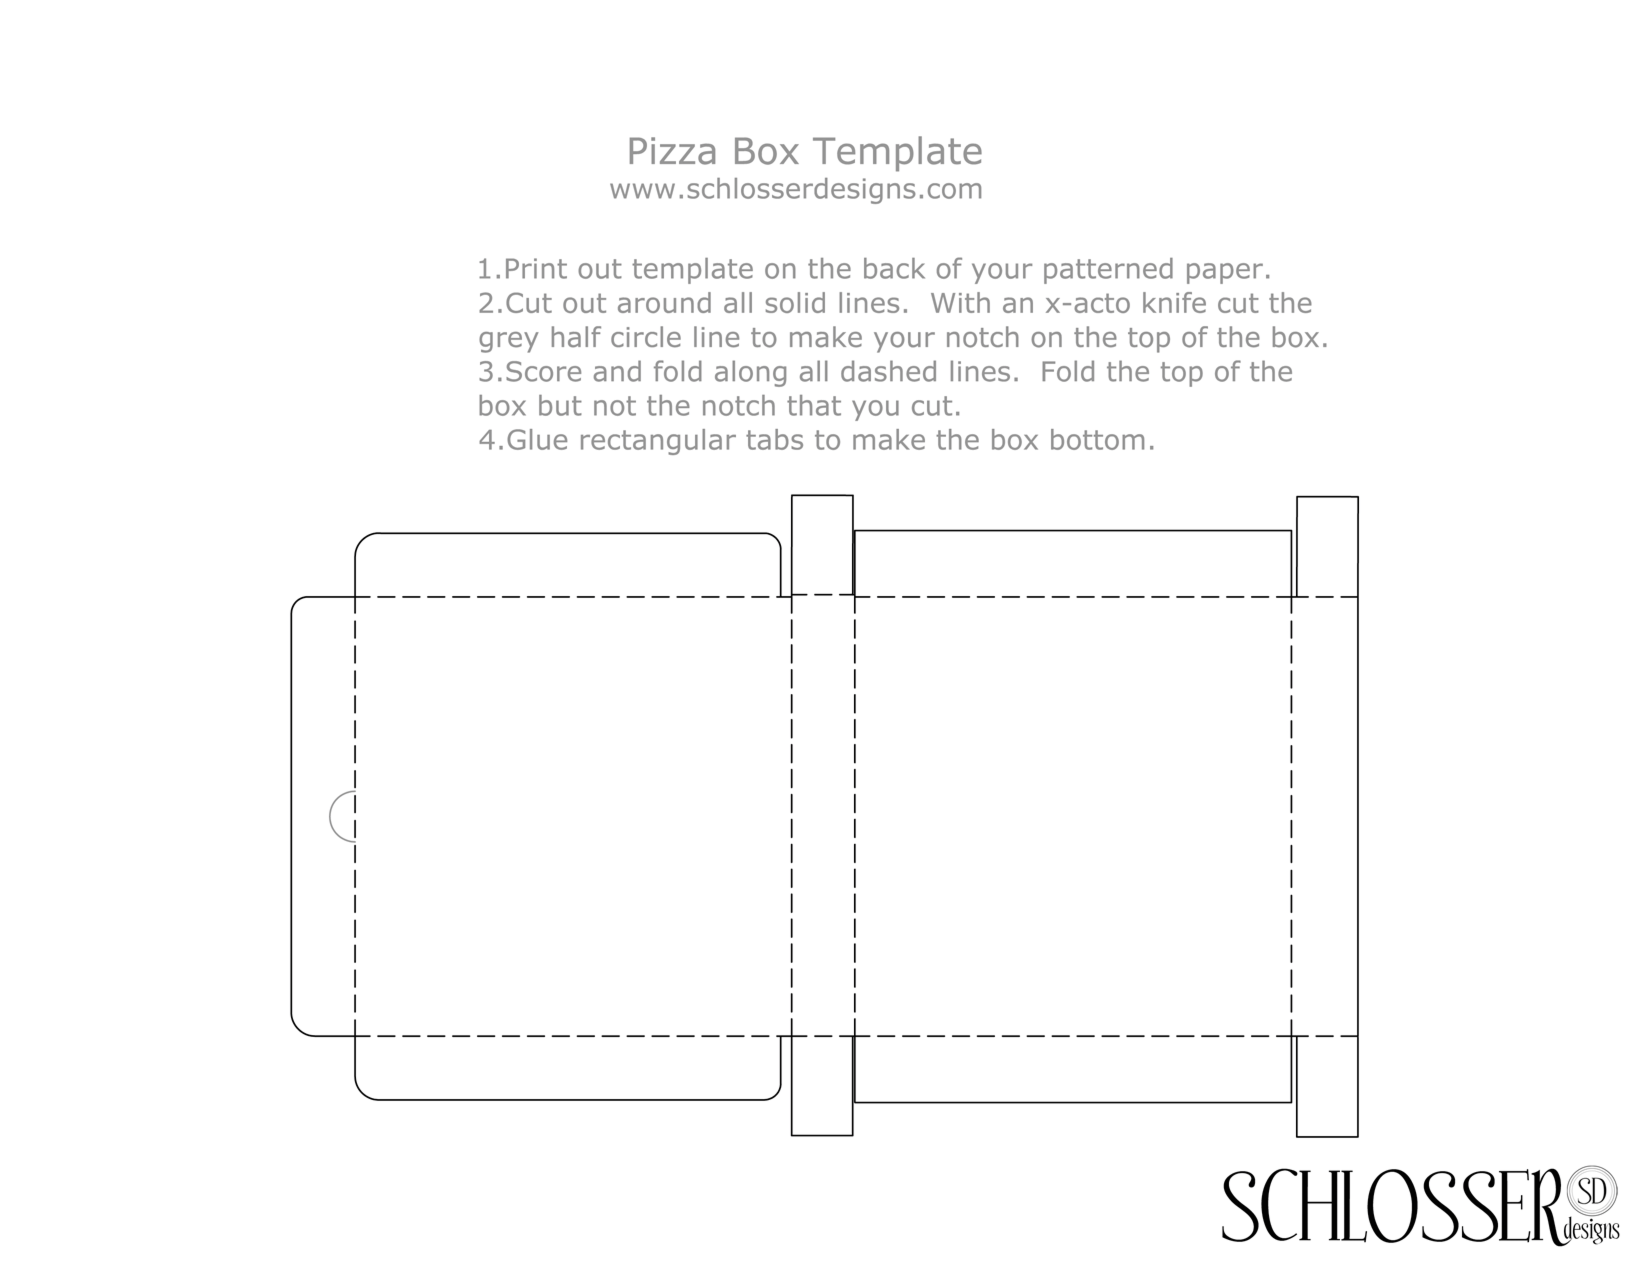 Mini pizza box templates £2. 50: instant | printable | pizza.